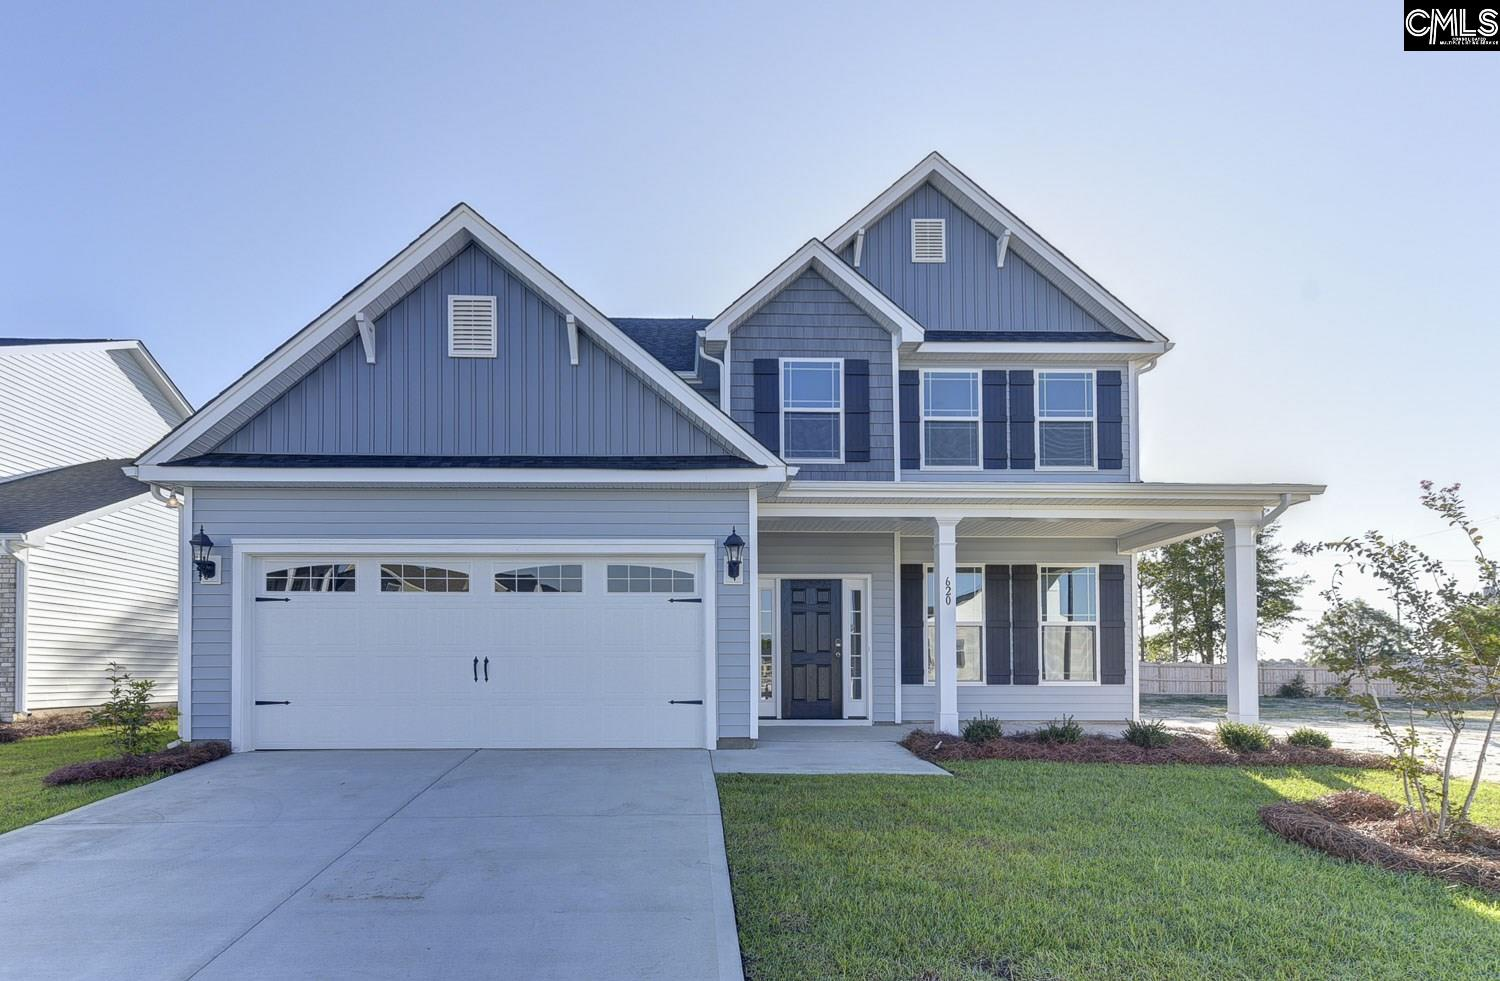 620 Colston Lexington, SC 29072